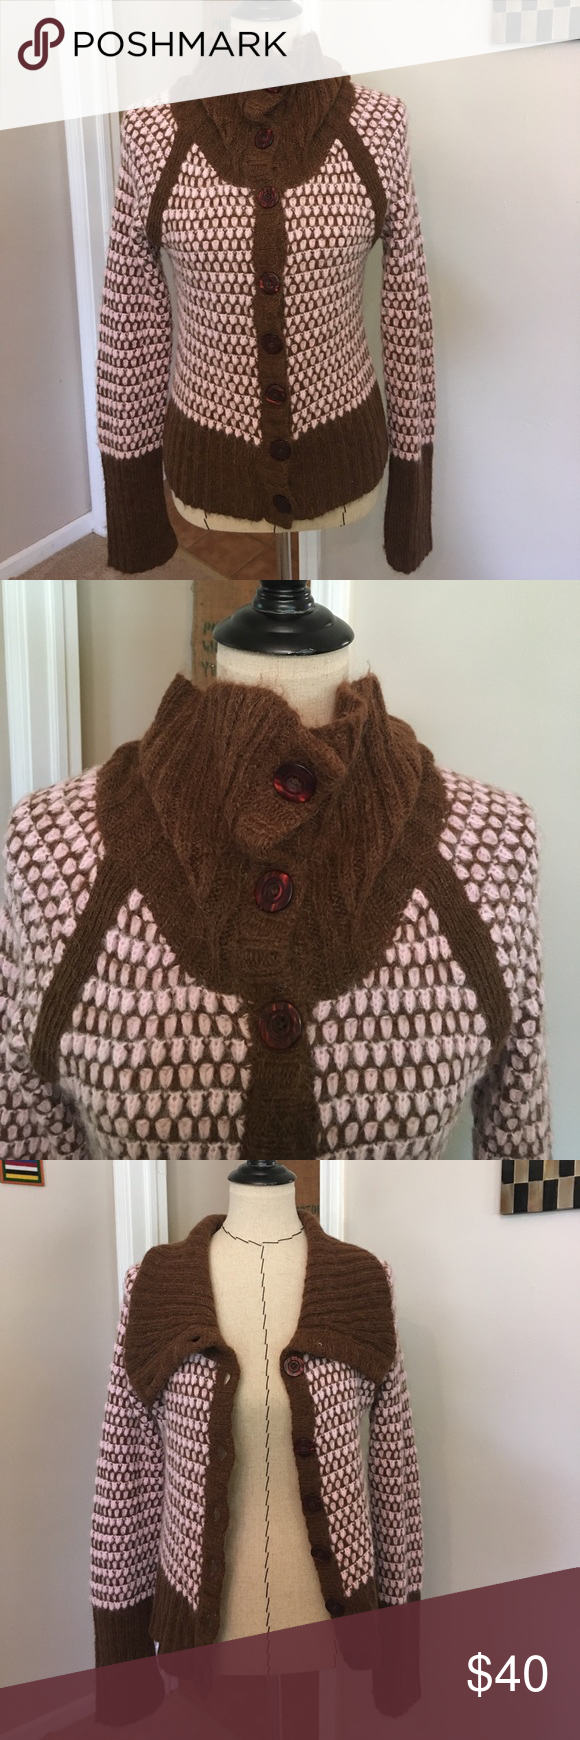 Free People Cardigan Sweater Warm and fuzzy pale pink and brown ...